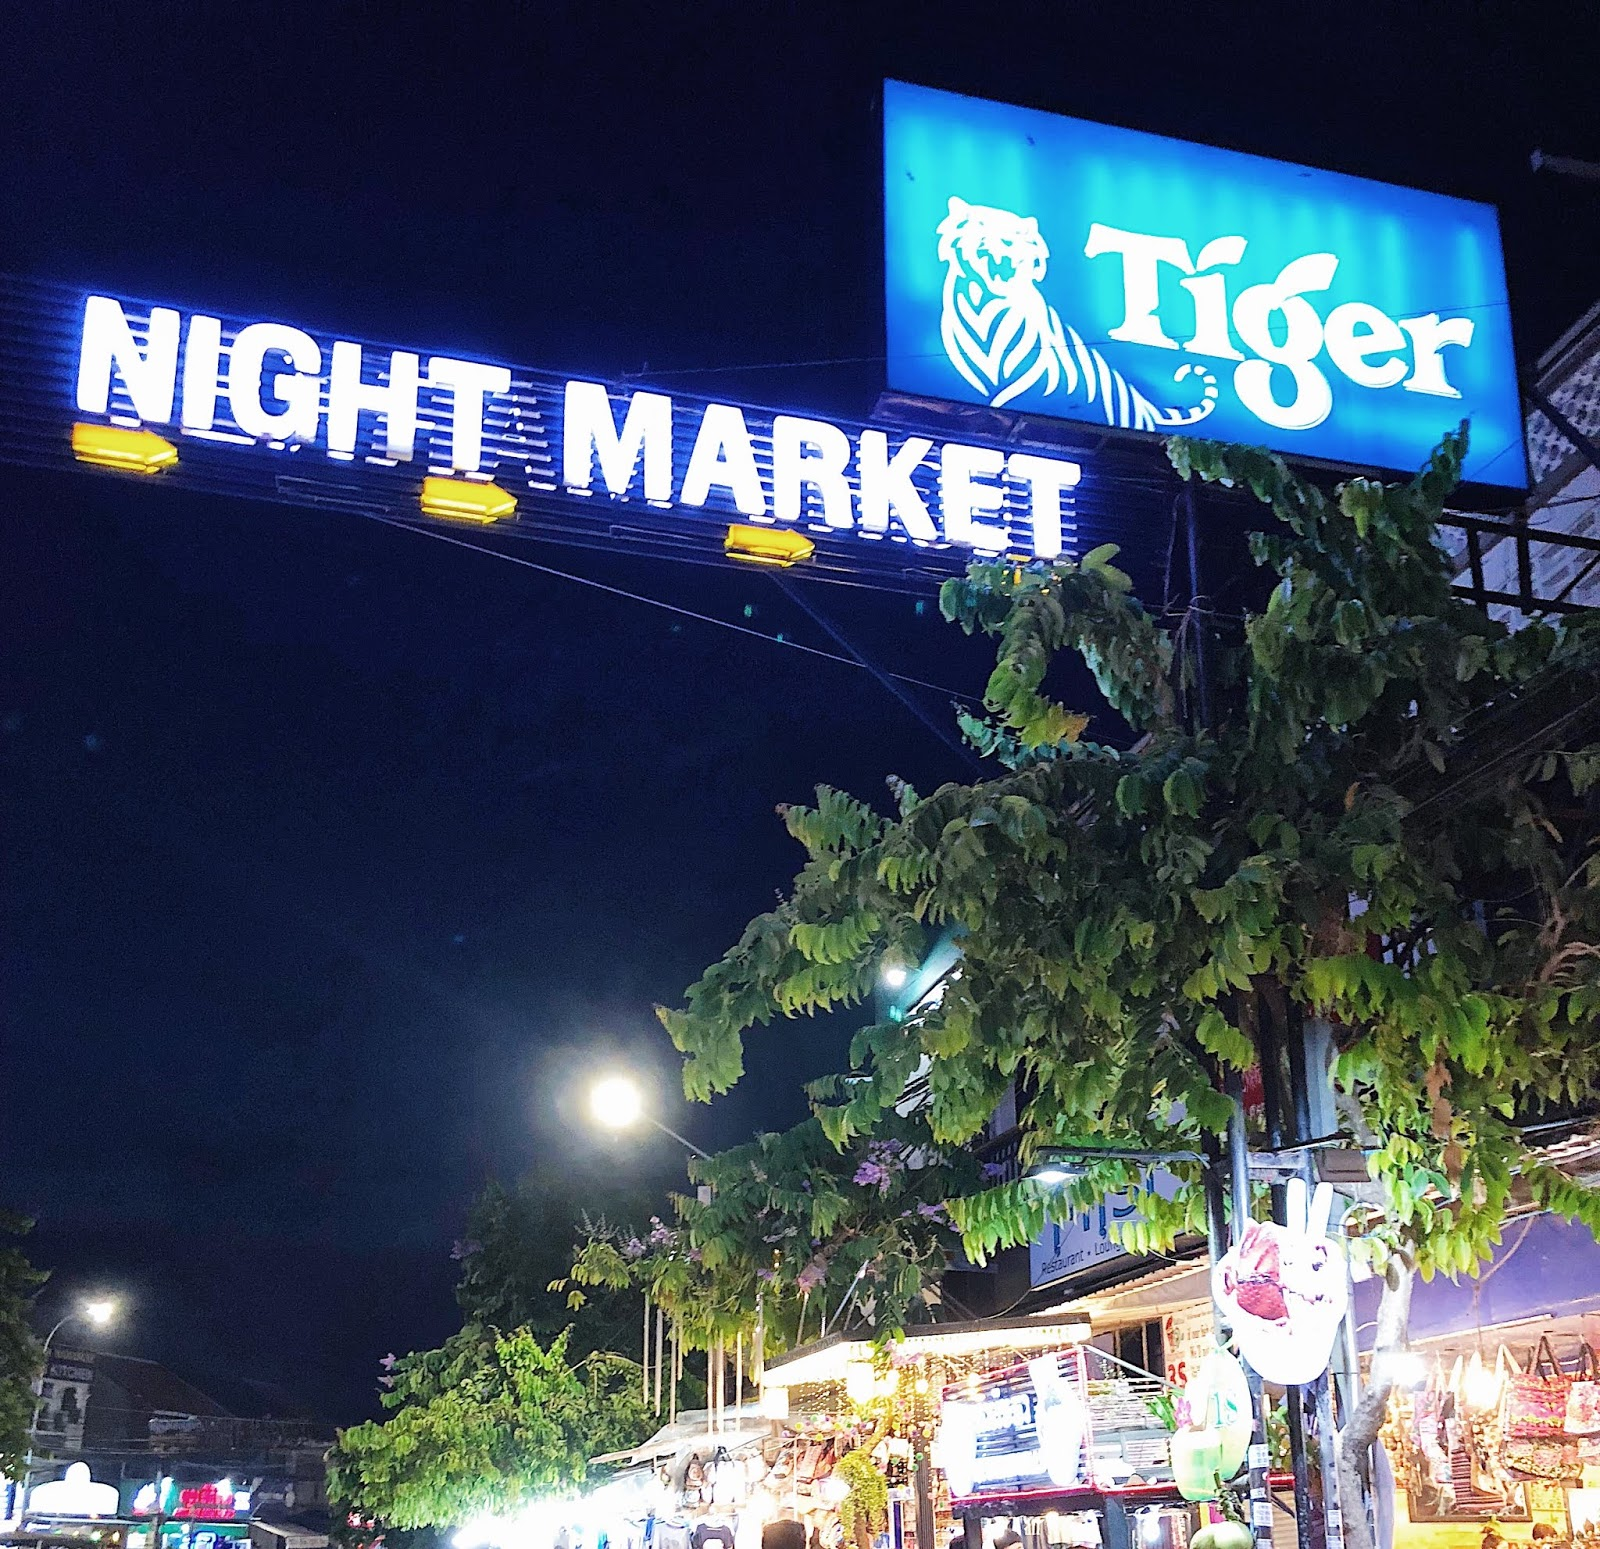 Night market/pub street